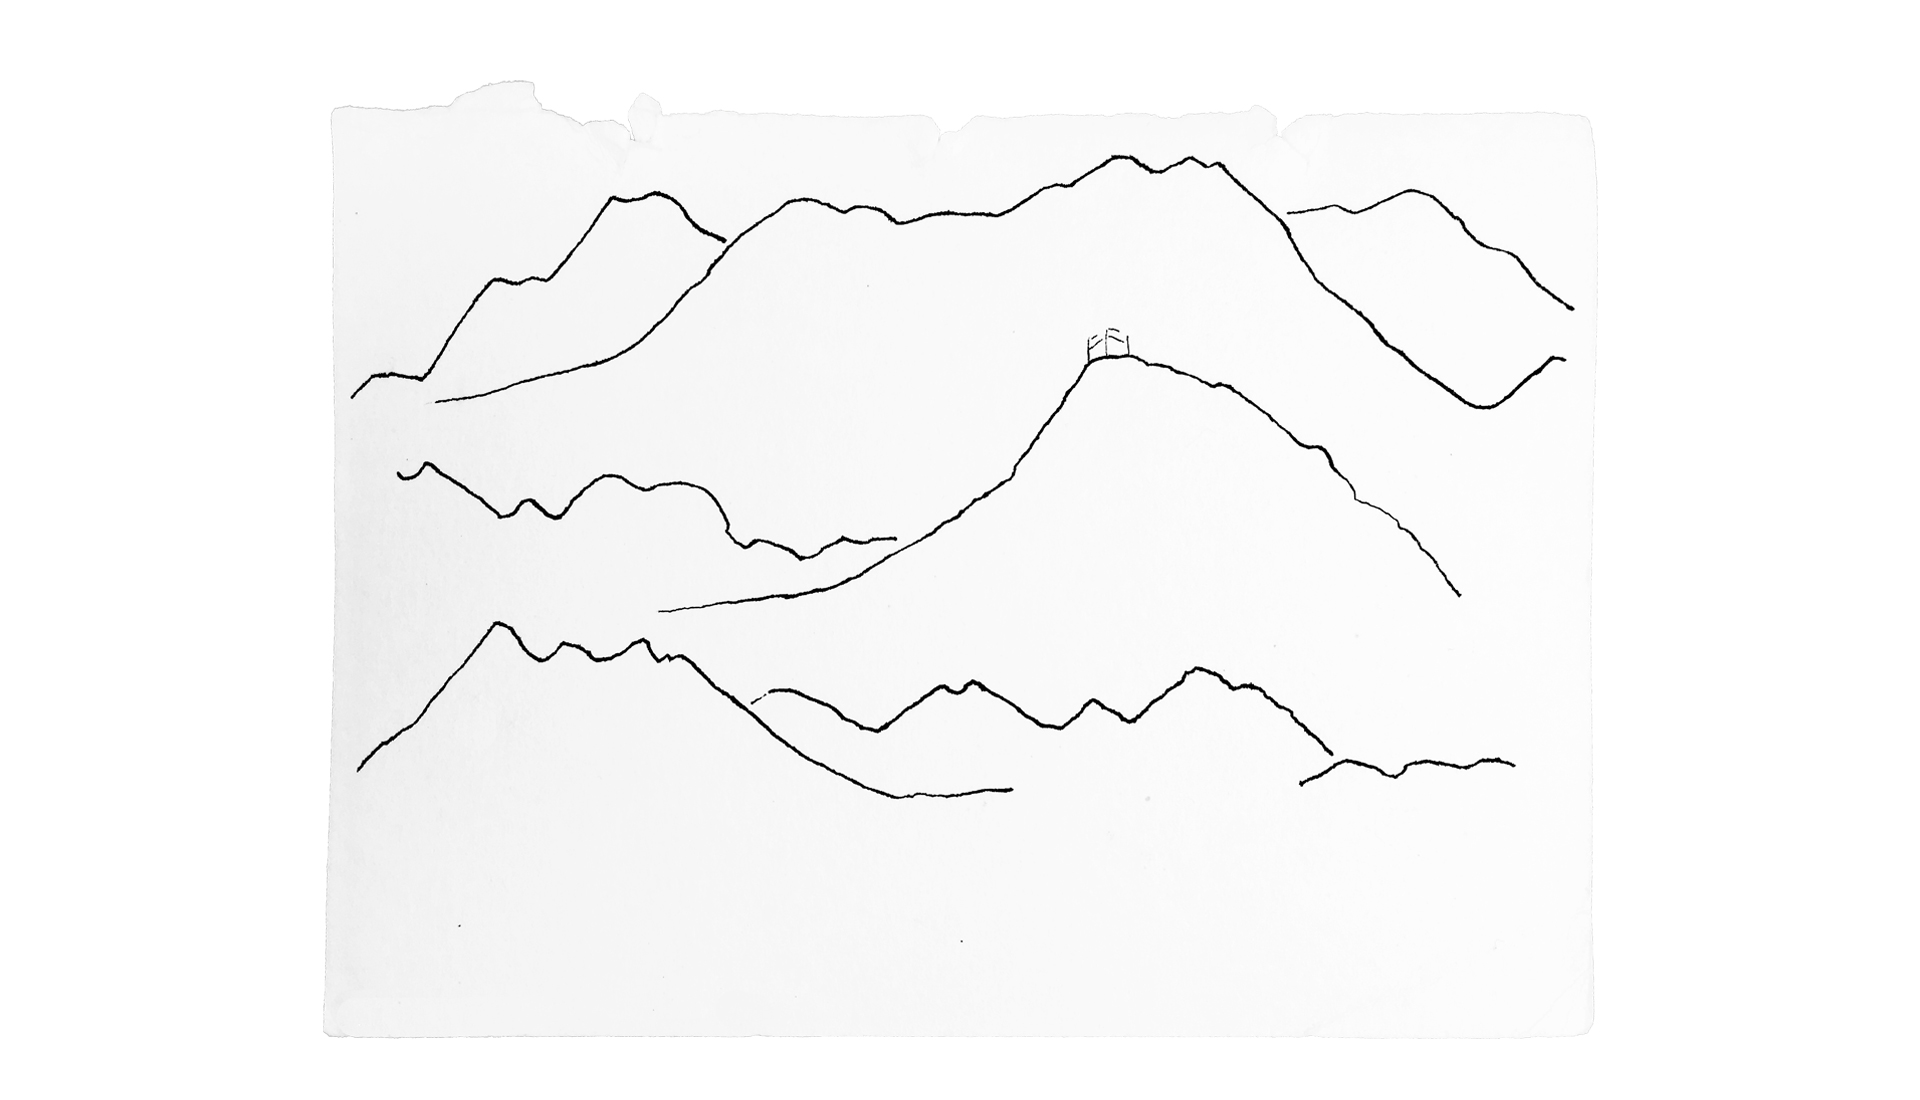 moutains_lines_2